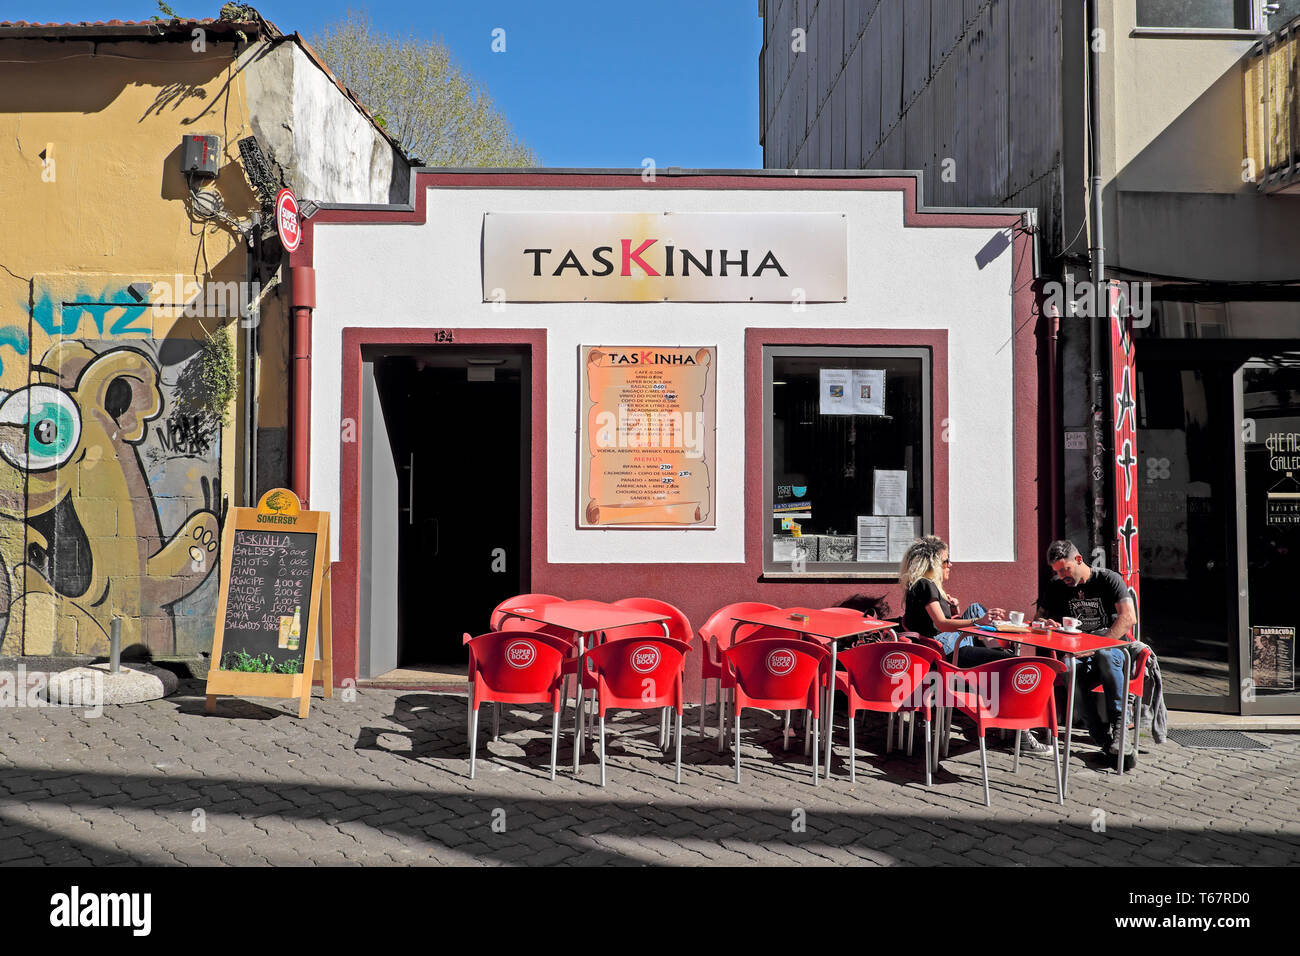 Exterior view of TasKinha bar and couple sitting outside at tables drinking in Porto, Oporto, Portugal   KATHY DEWITT - Stock Image